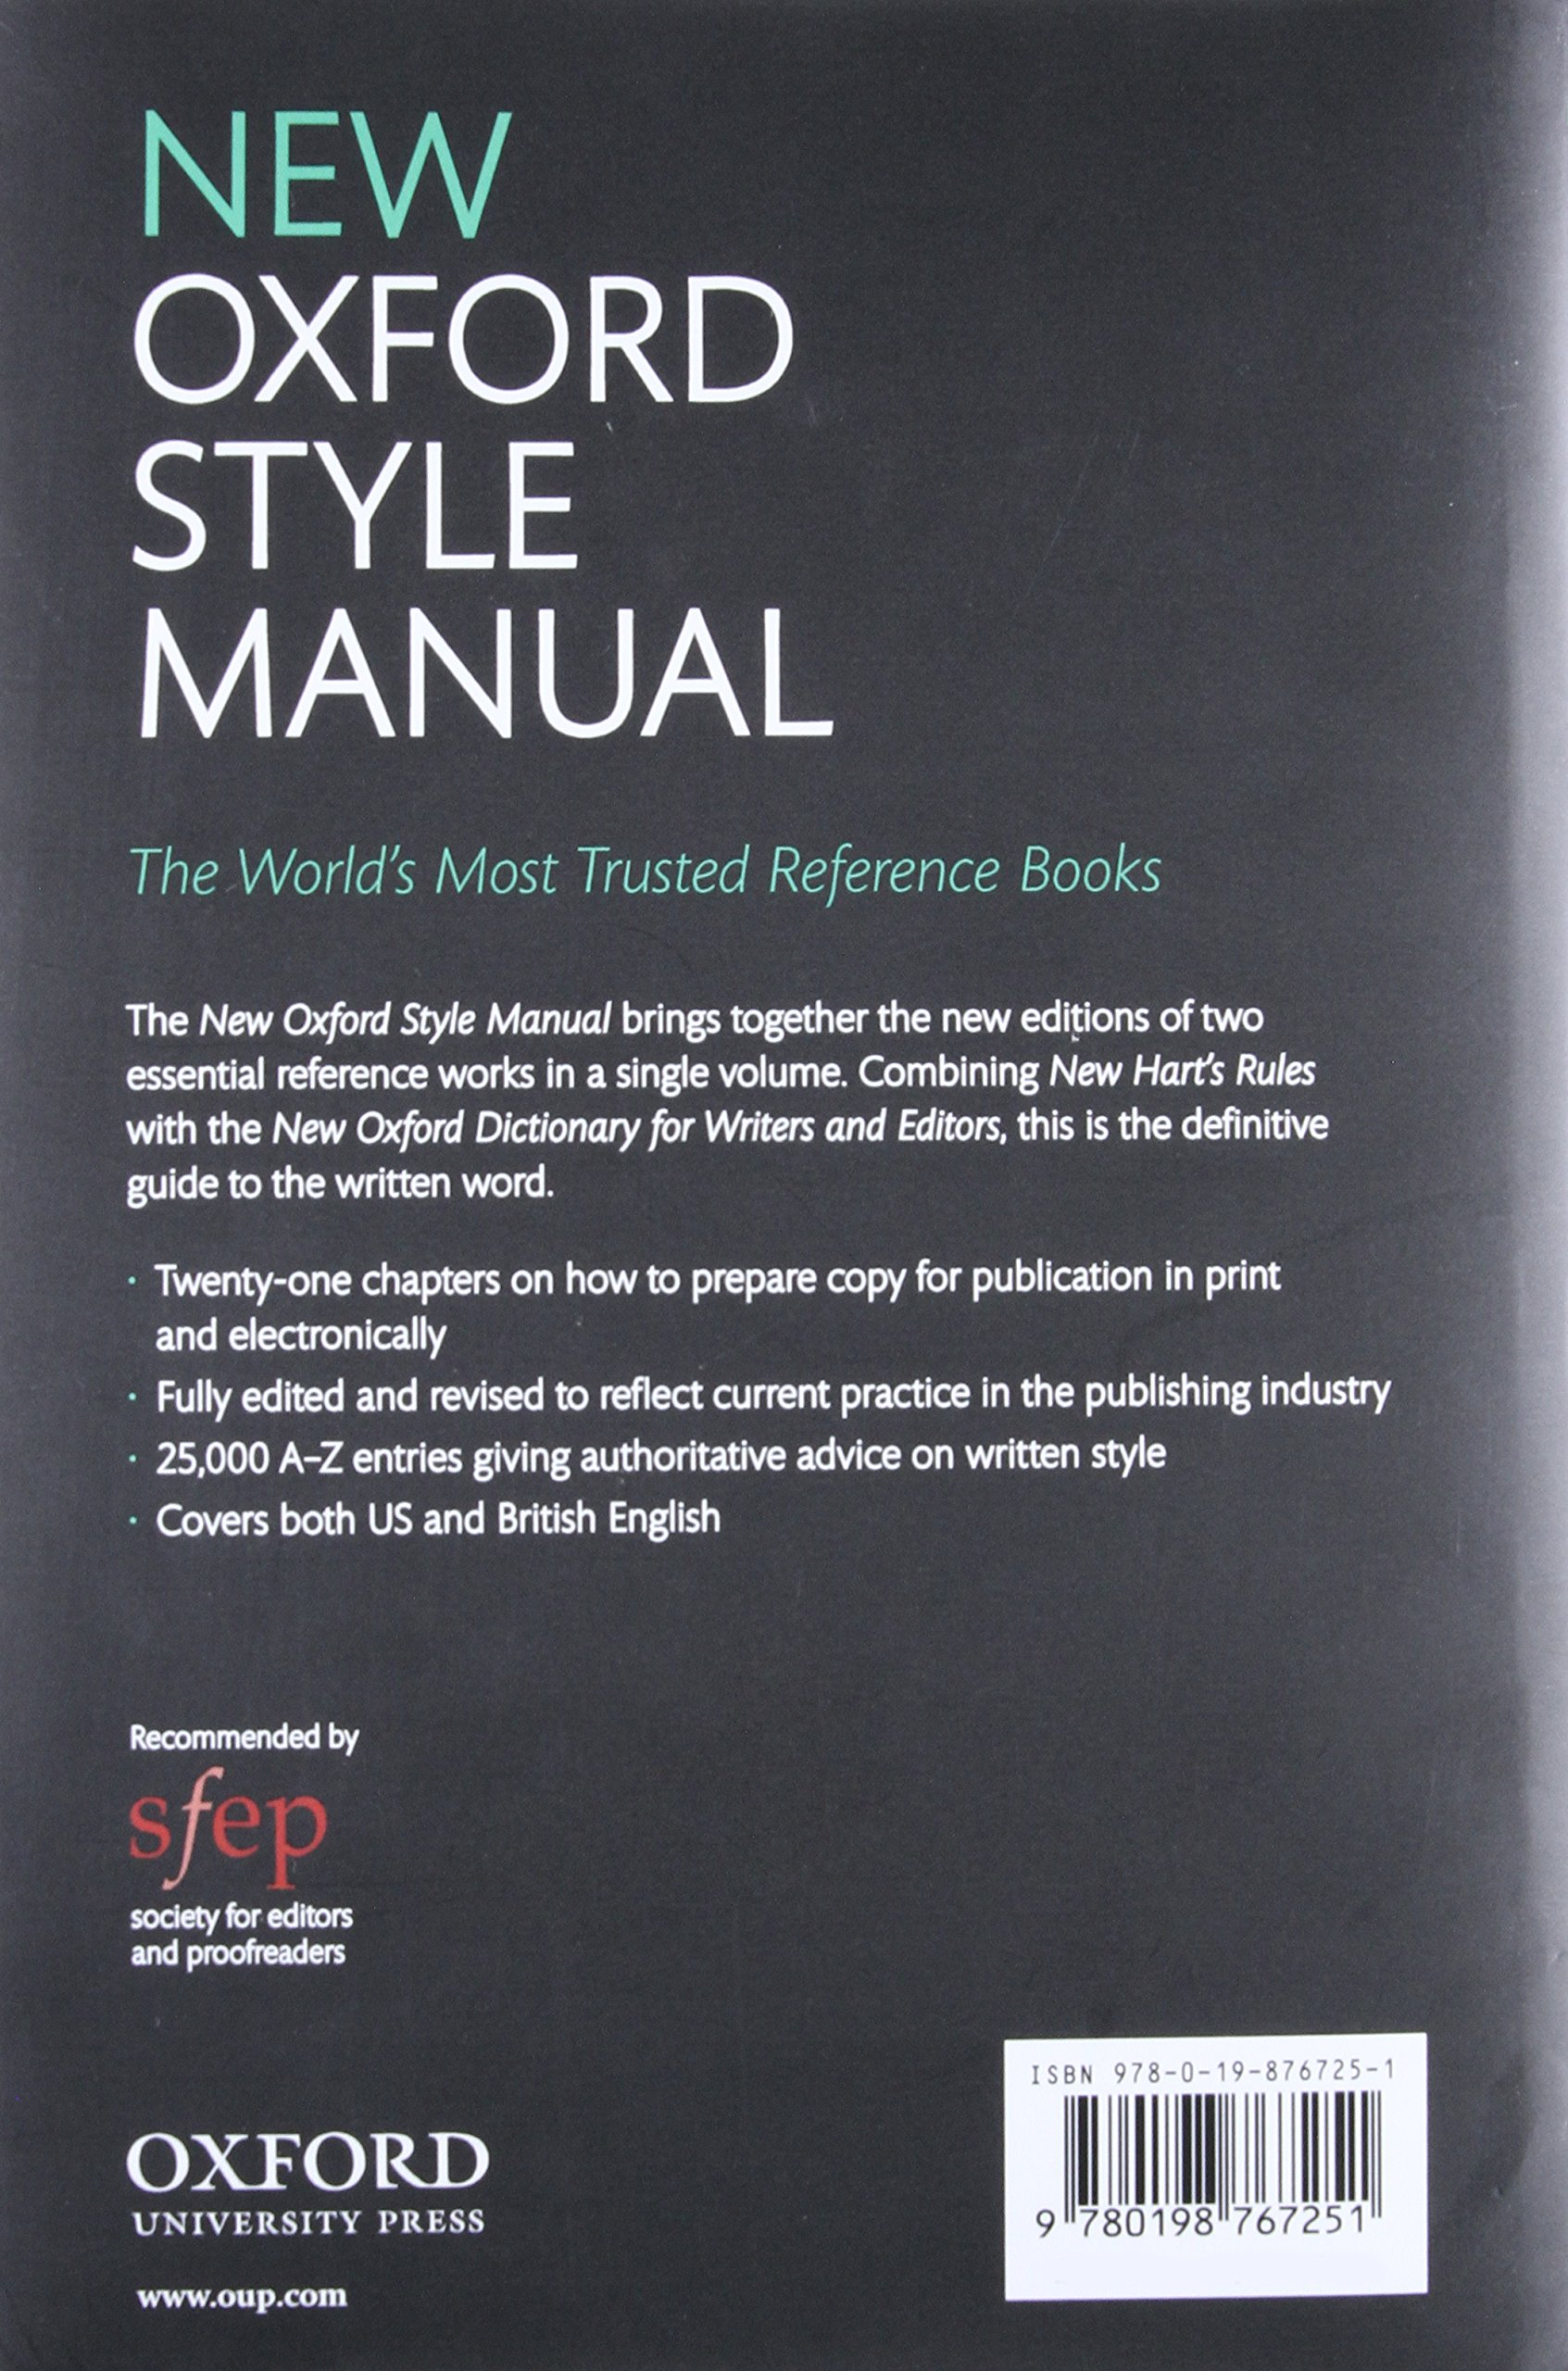 New Oxford Style Manual: Amazon.co.uk: Oxford University Press:  9780198767251: Books